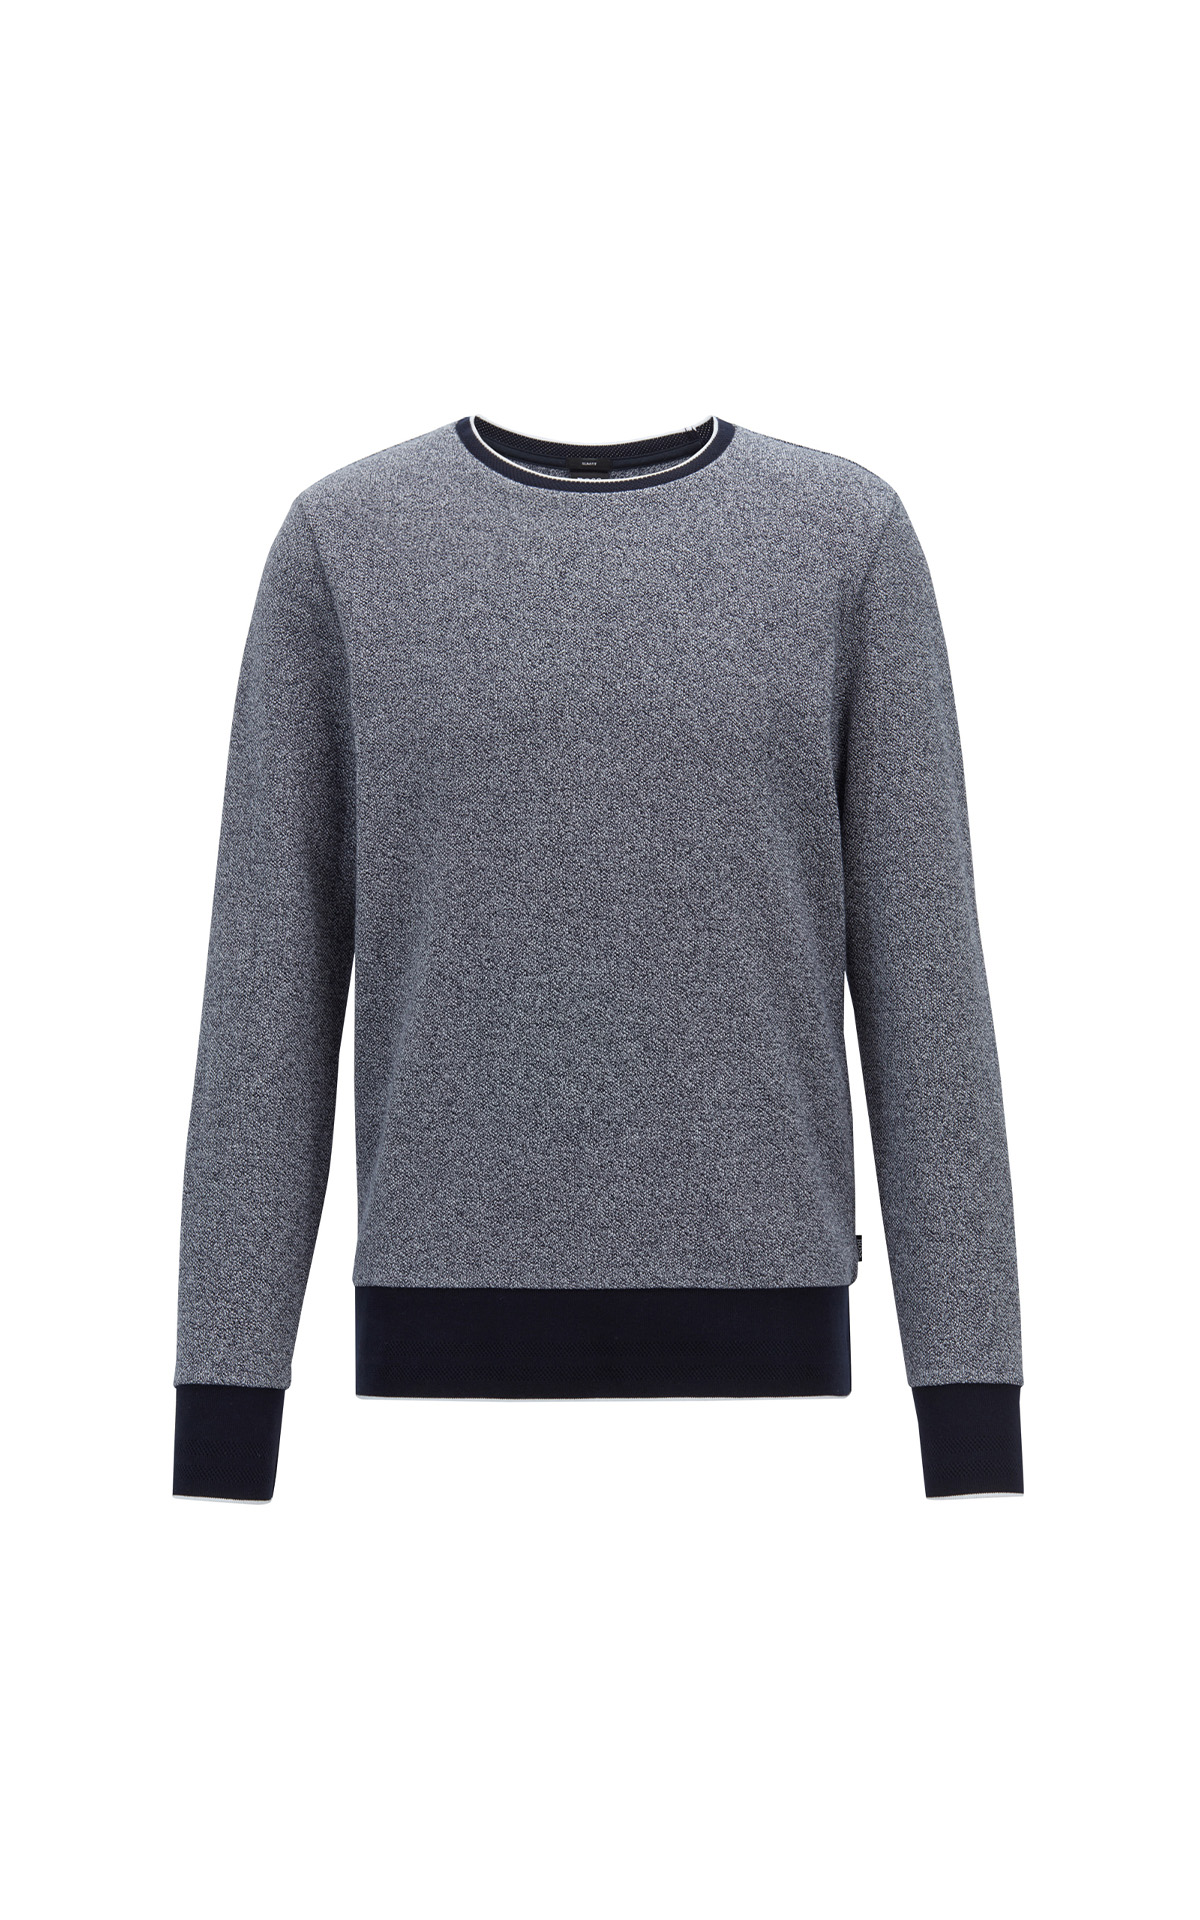 BOSS sweater at The Bicester Village Shopping Collection